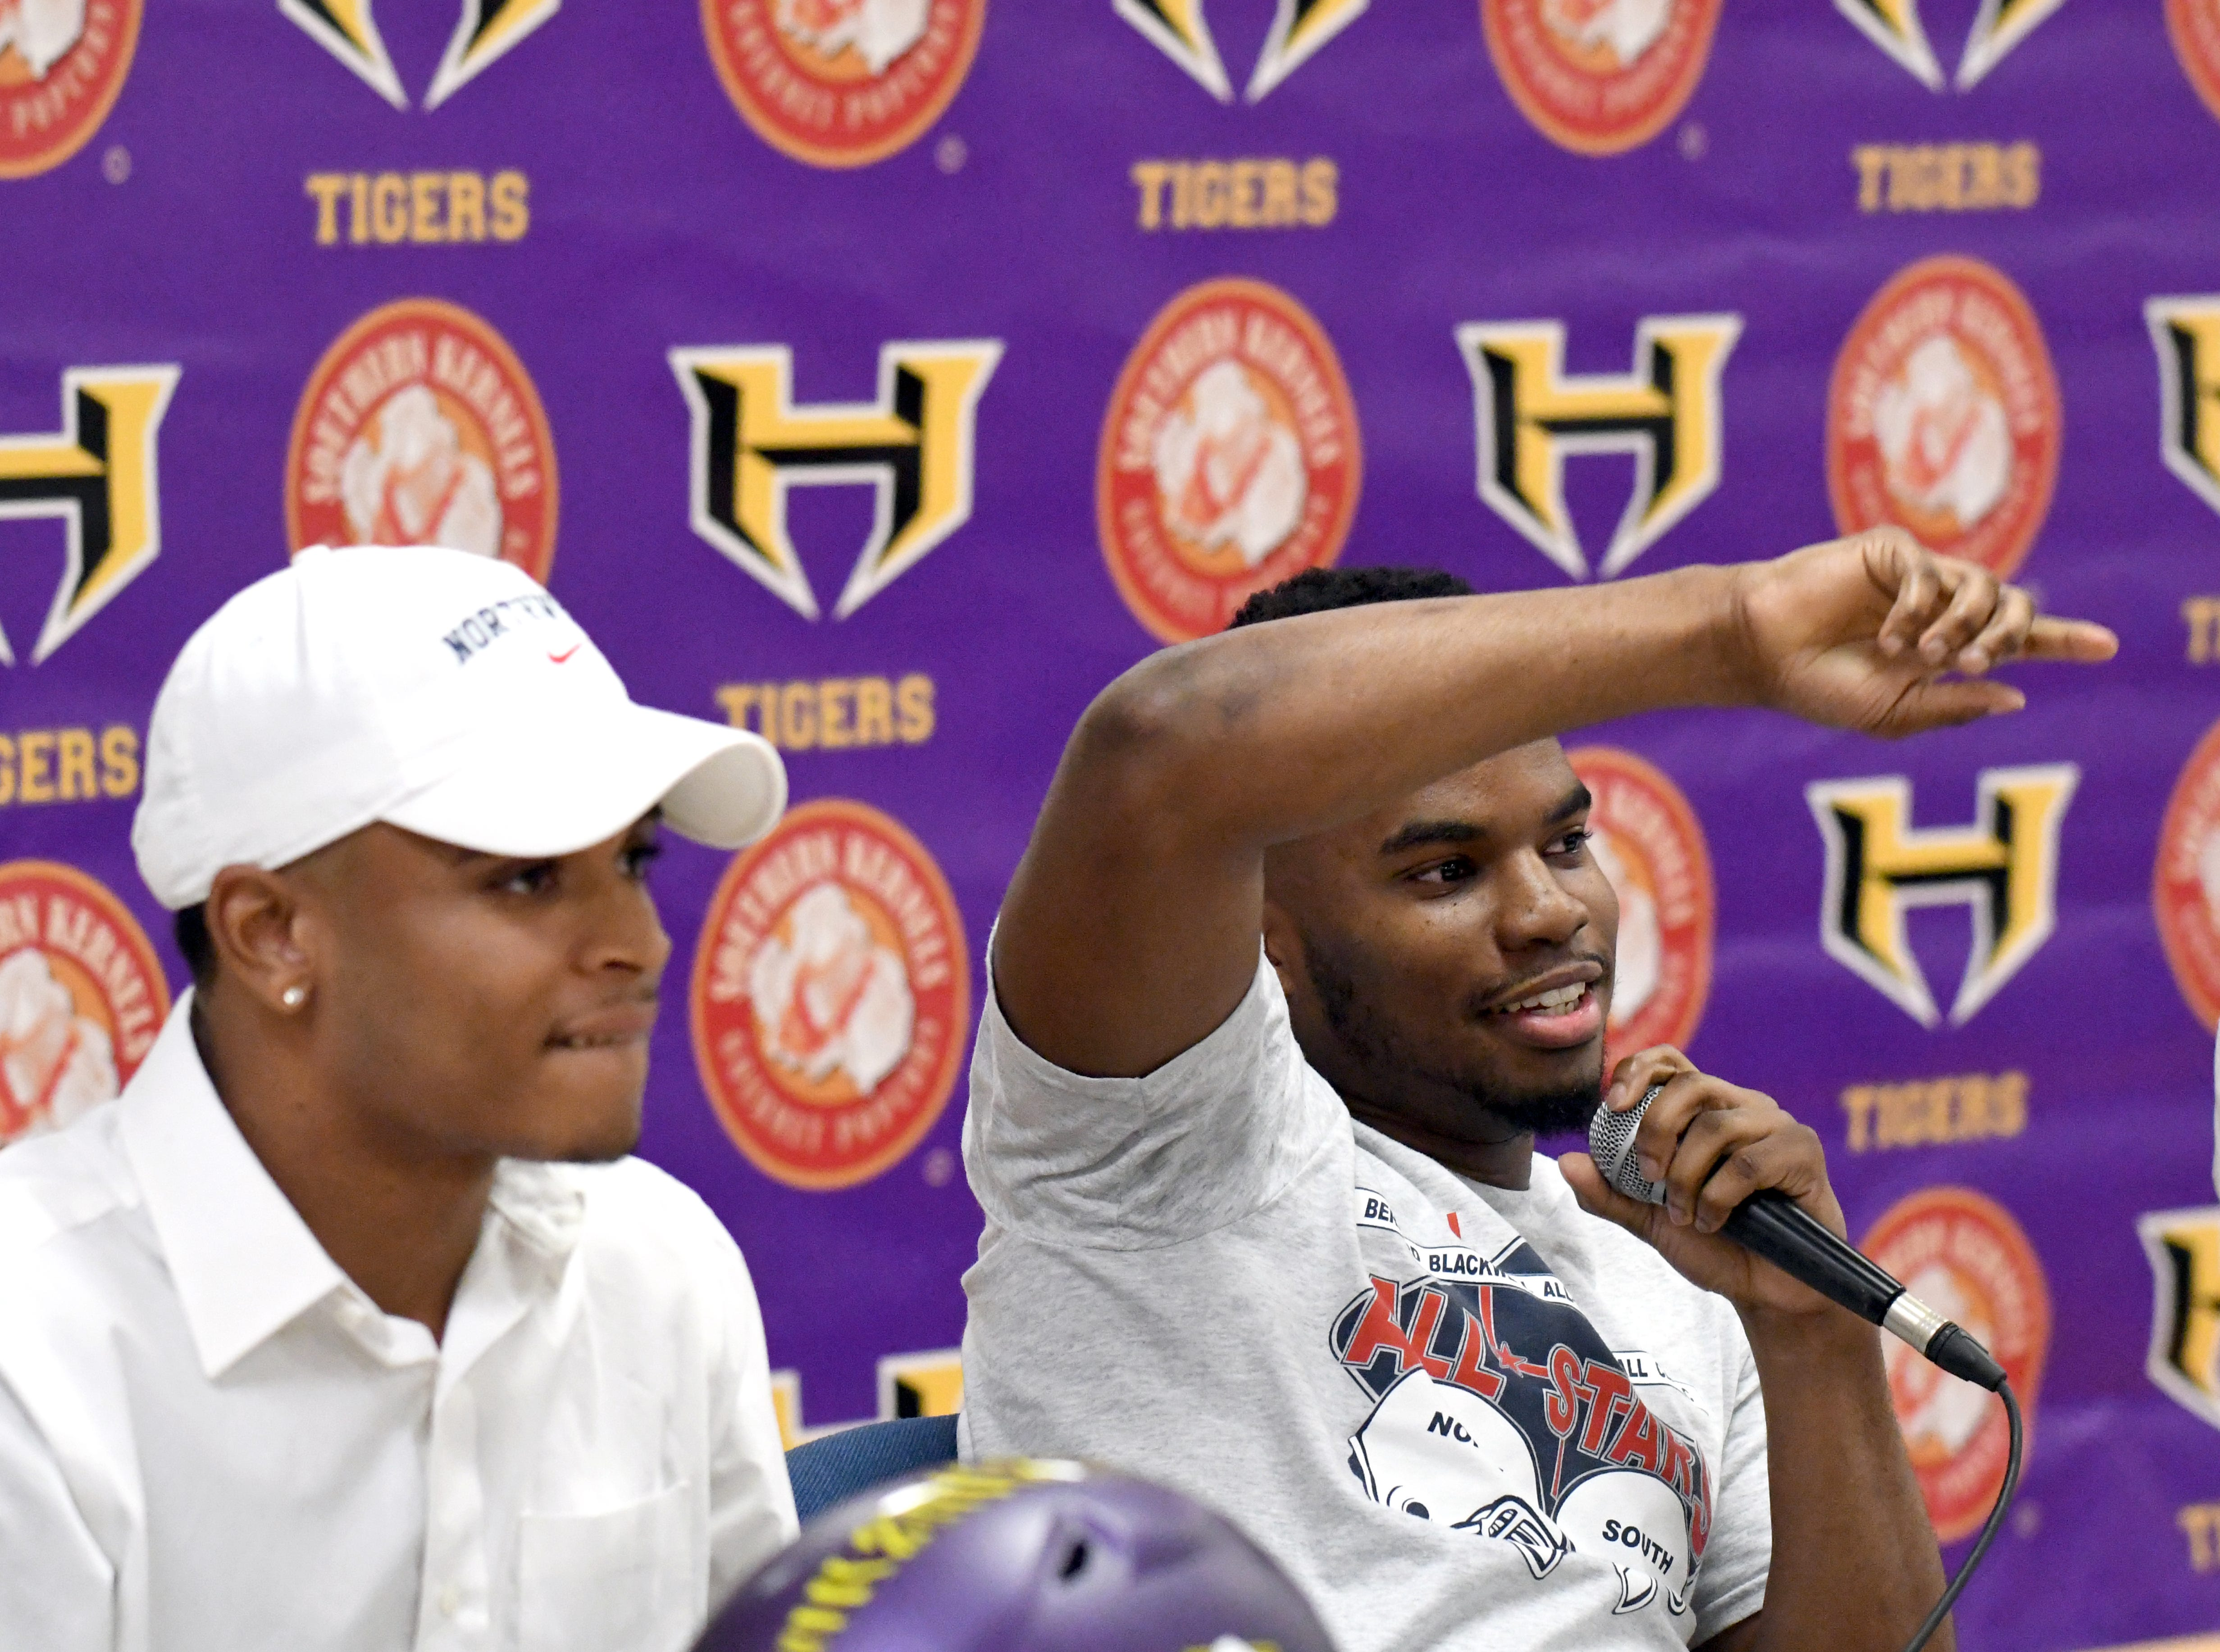 Hattiesburg High senior Drexlan Allen signed with Jackson State University during National Signing Day in Hattiesburg on Wednesday, February 6, 2019.